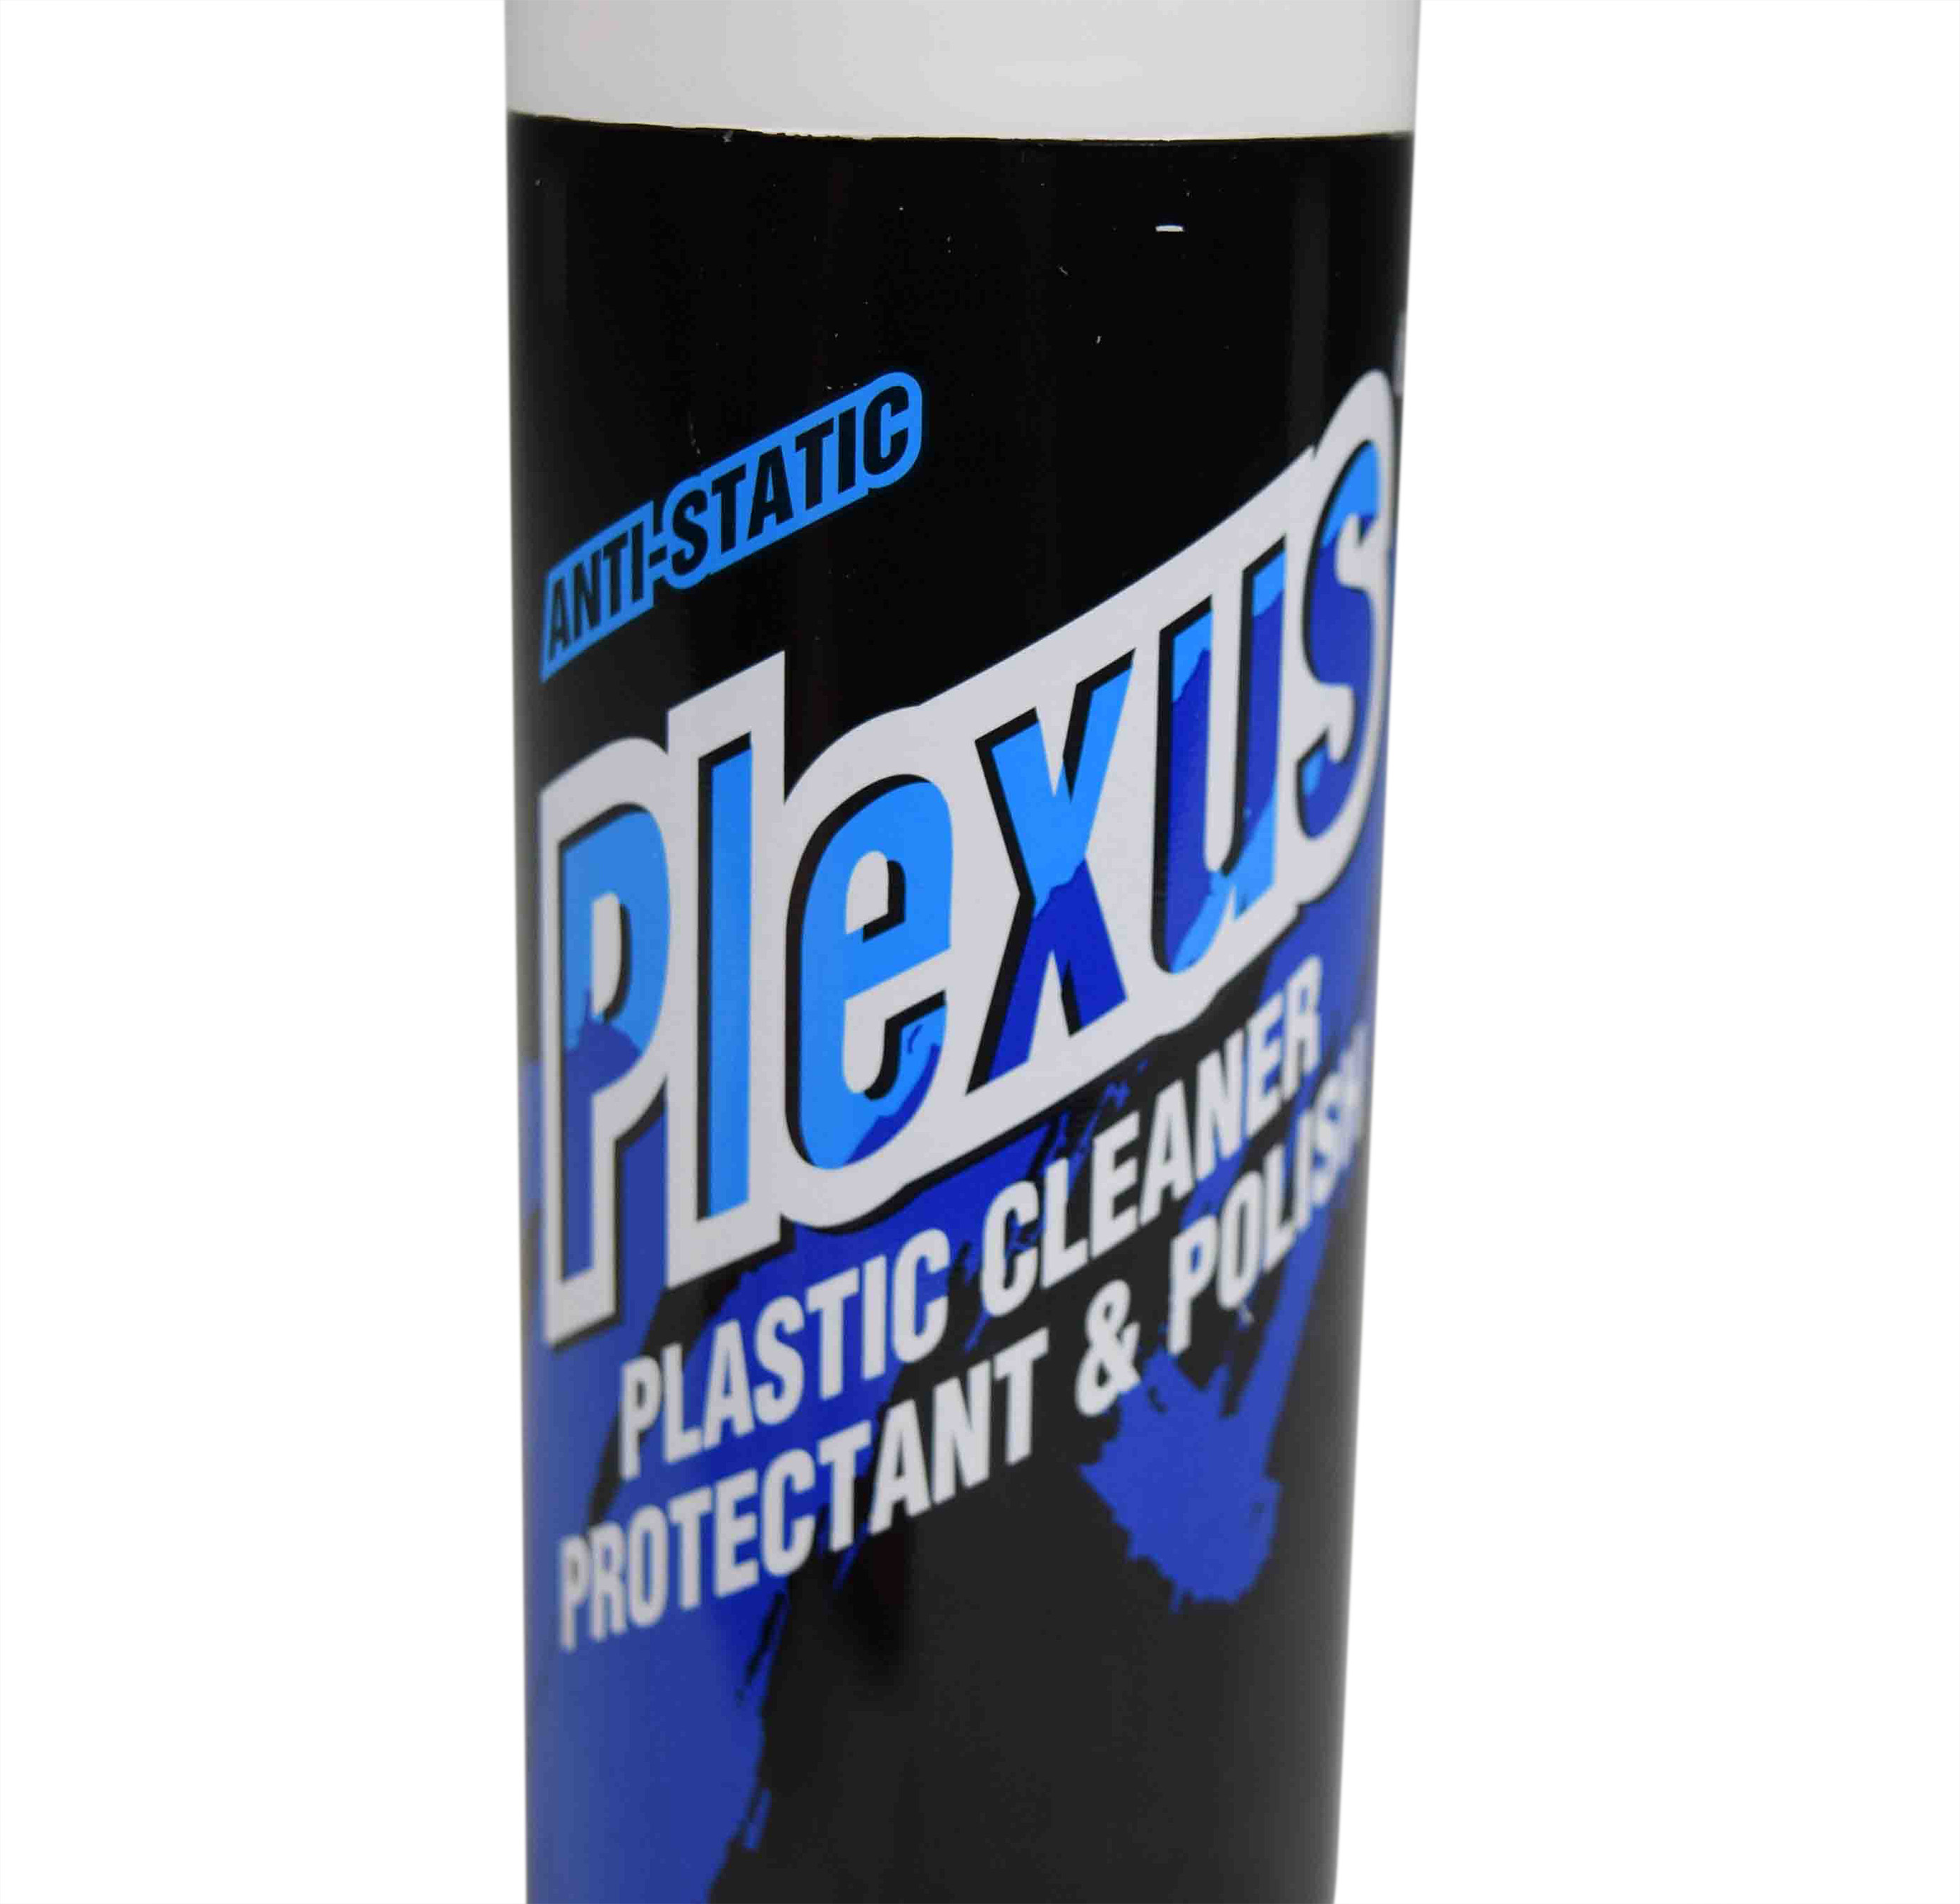 Plexus-Plastic-Cleaner-Protectant-Polish-7oz-Can-8-Pack-MADE-In-the-USA-image-3